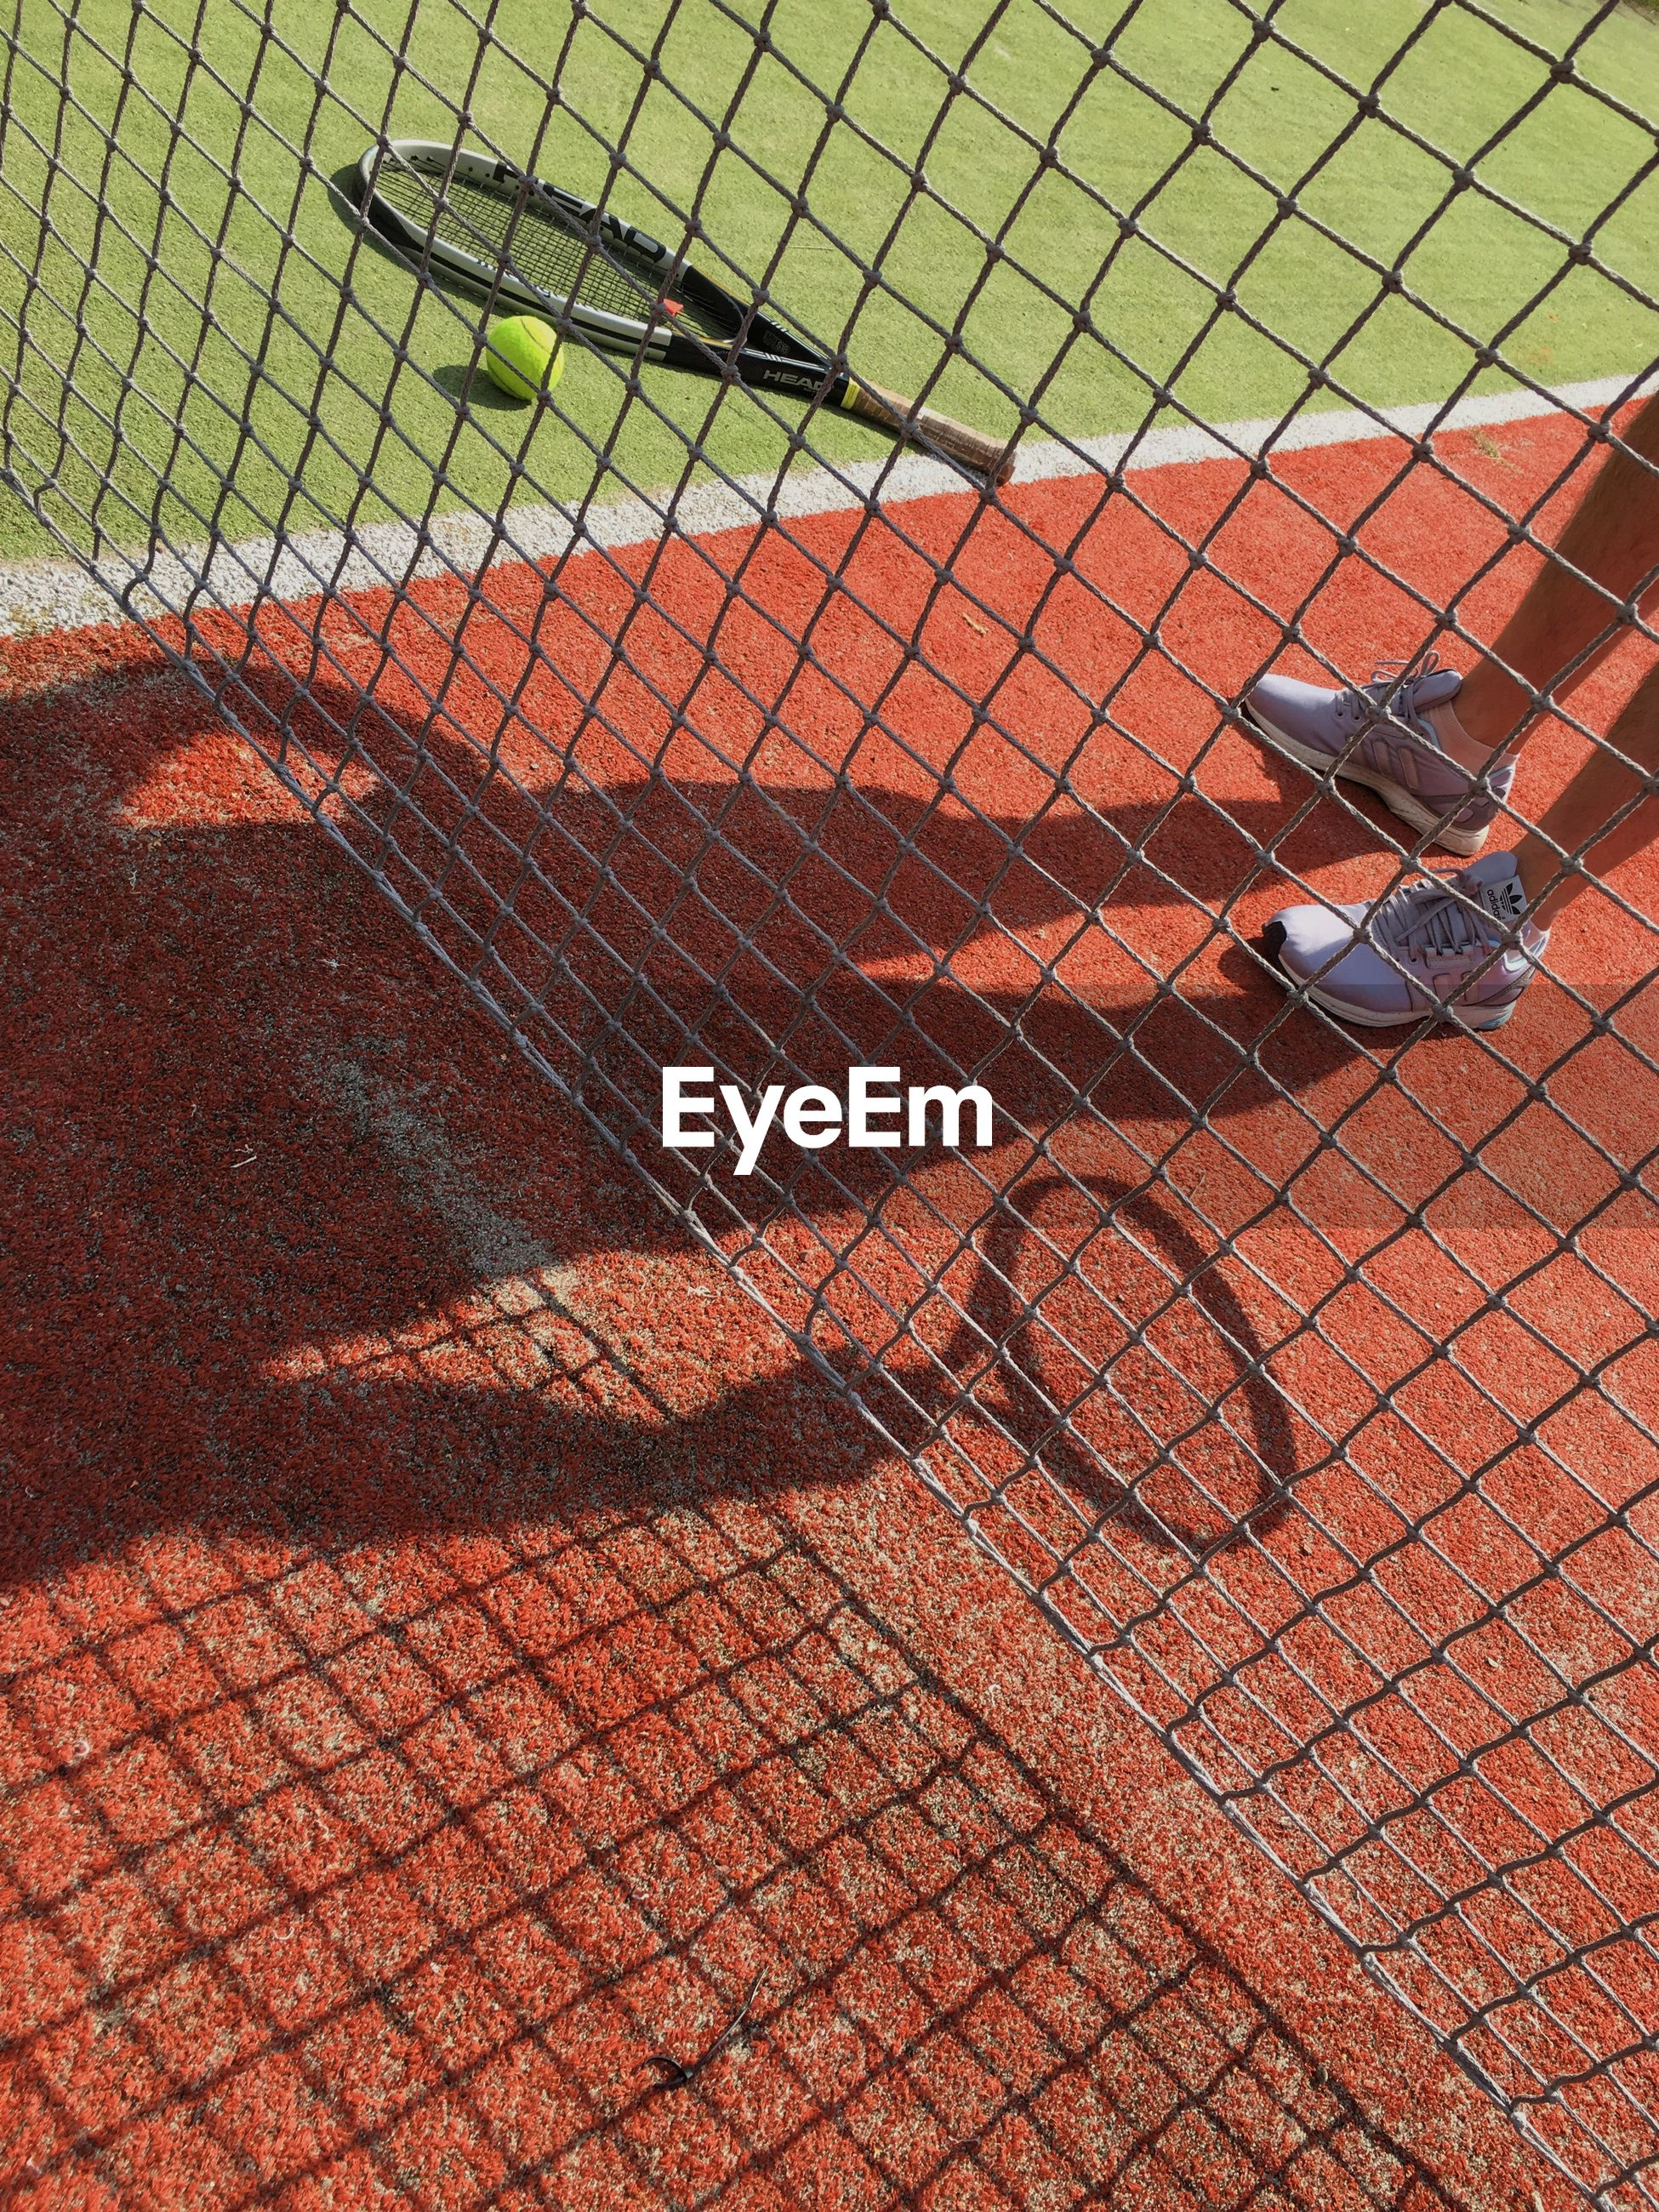 Low section of person standing by chainlink fence on tennis court